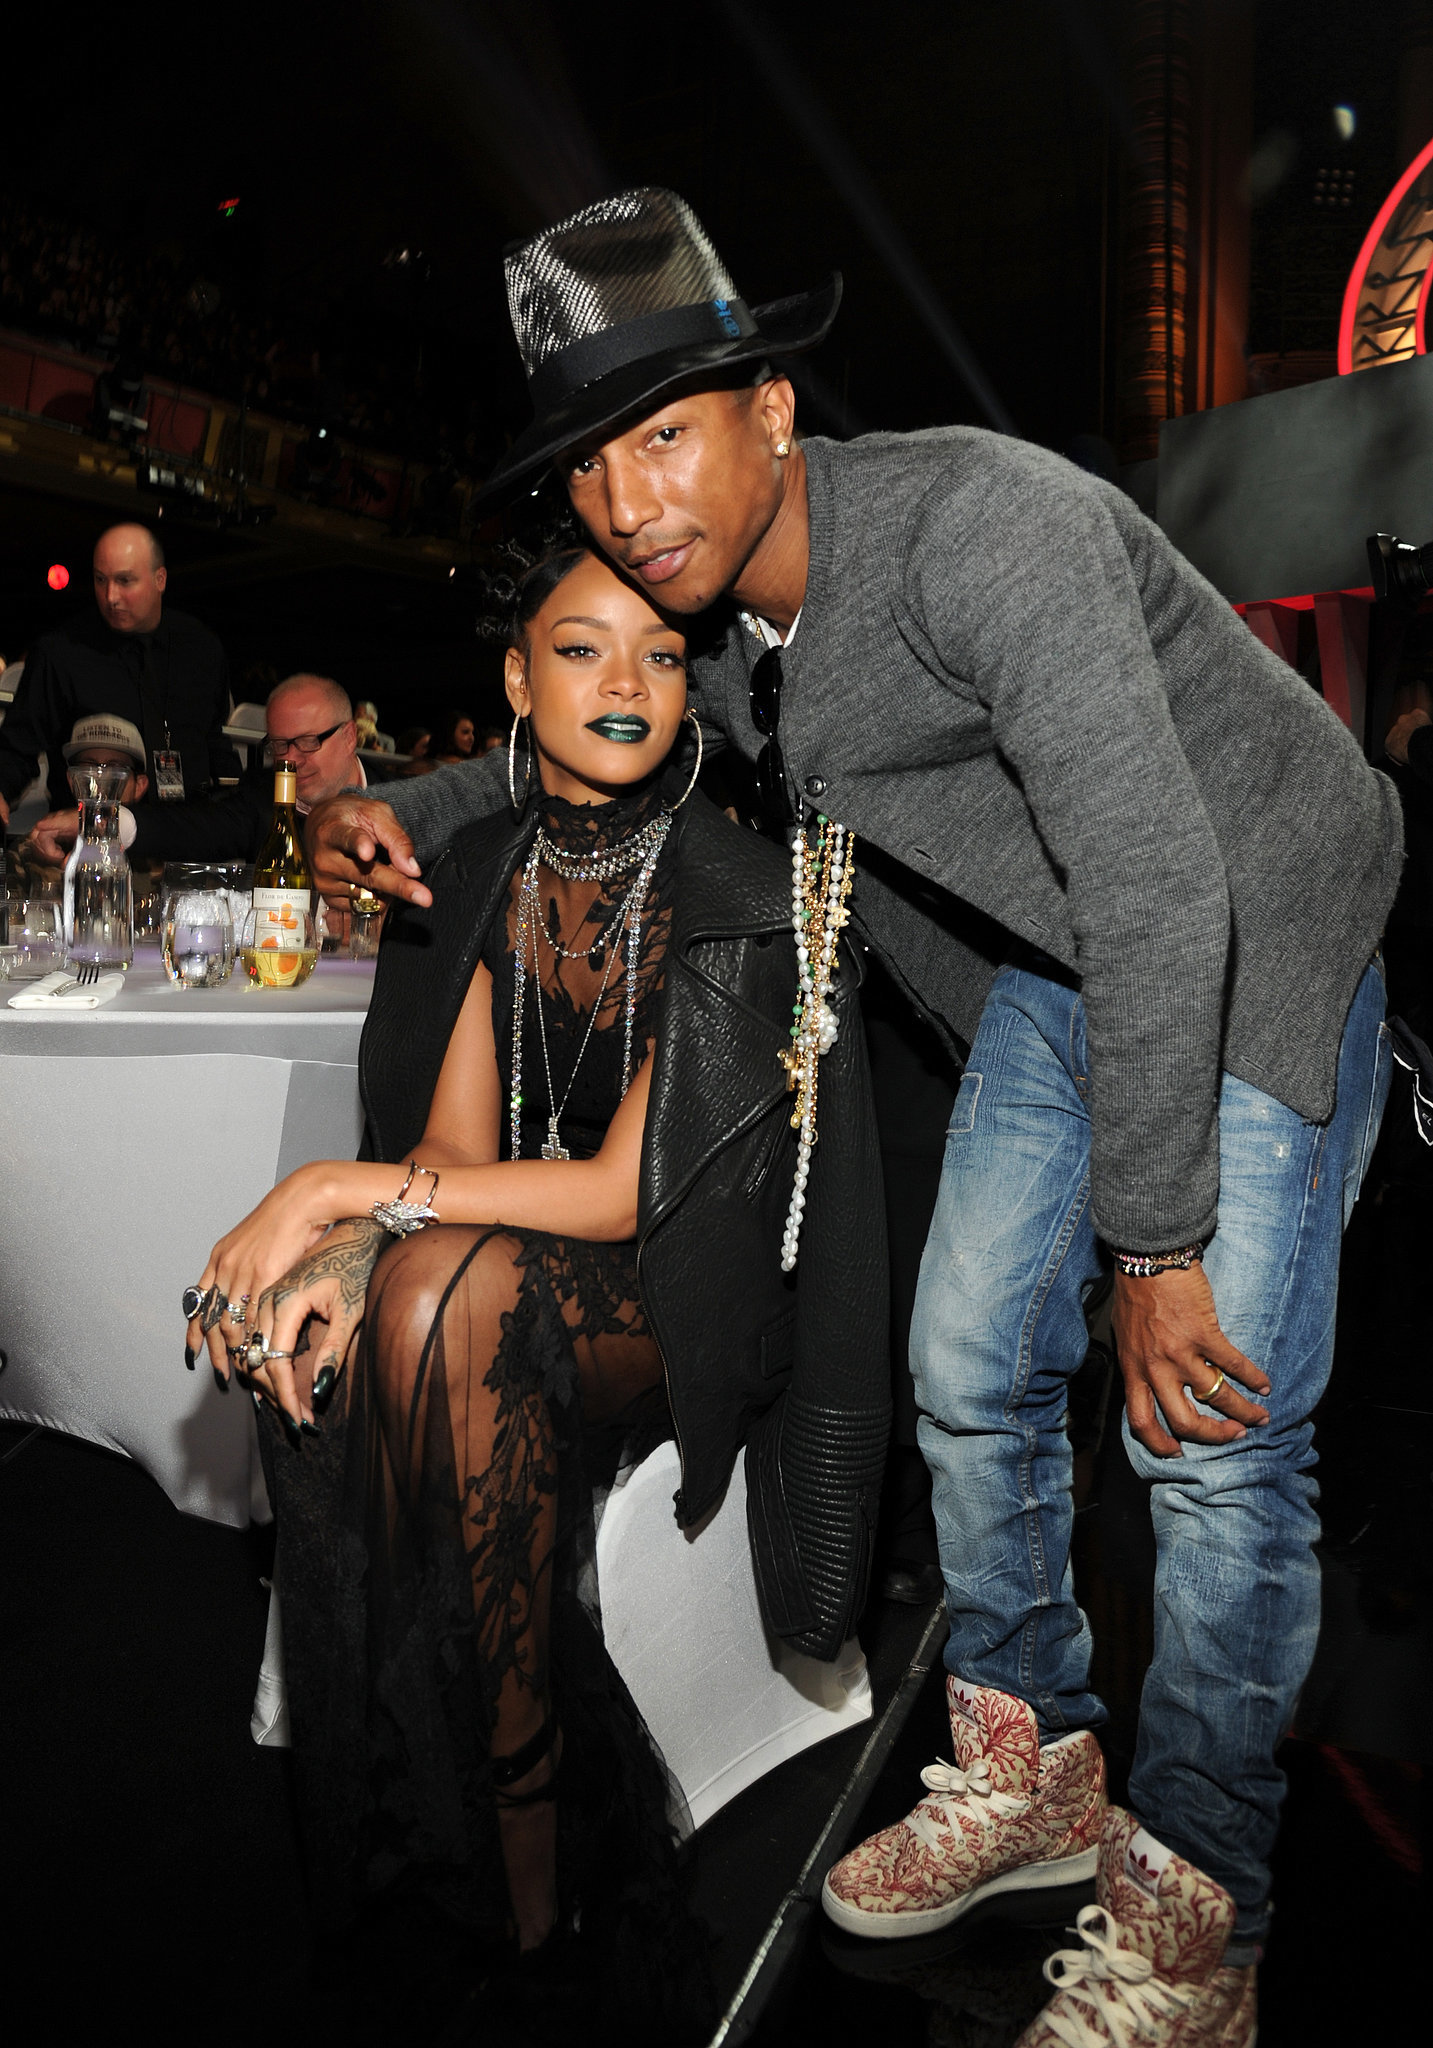 Pharrell Rihanna dating Hvordan starte dating på nytt på 60